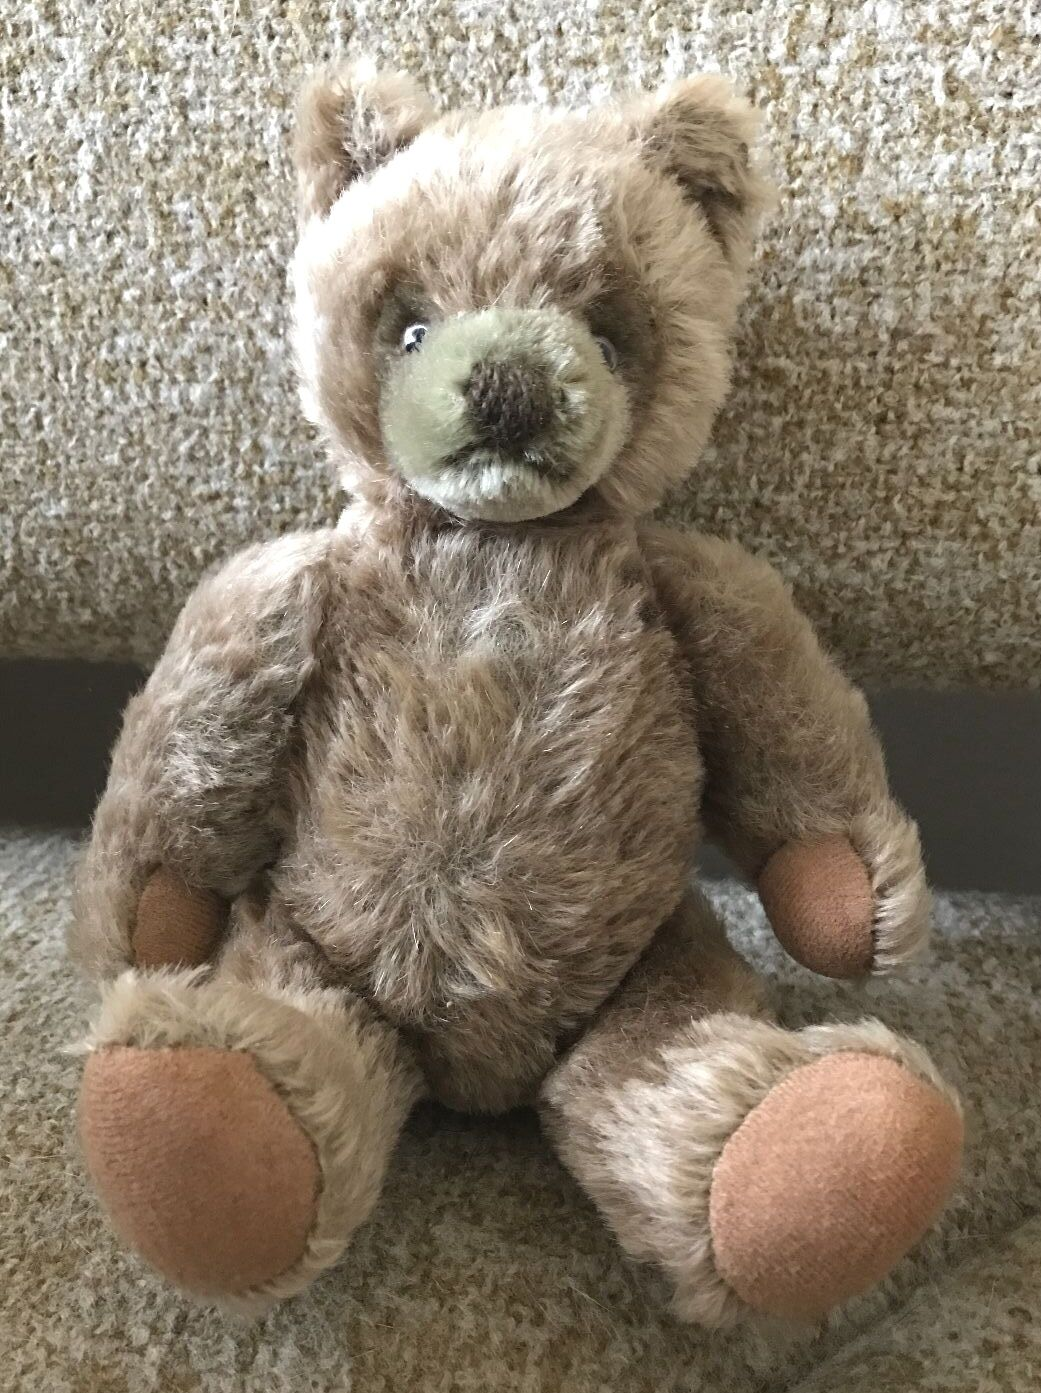 Bear Attack: Steiff new editions 2005 - Steiff Teddy Old fashioned jointed teddy bears